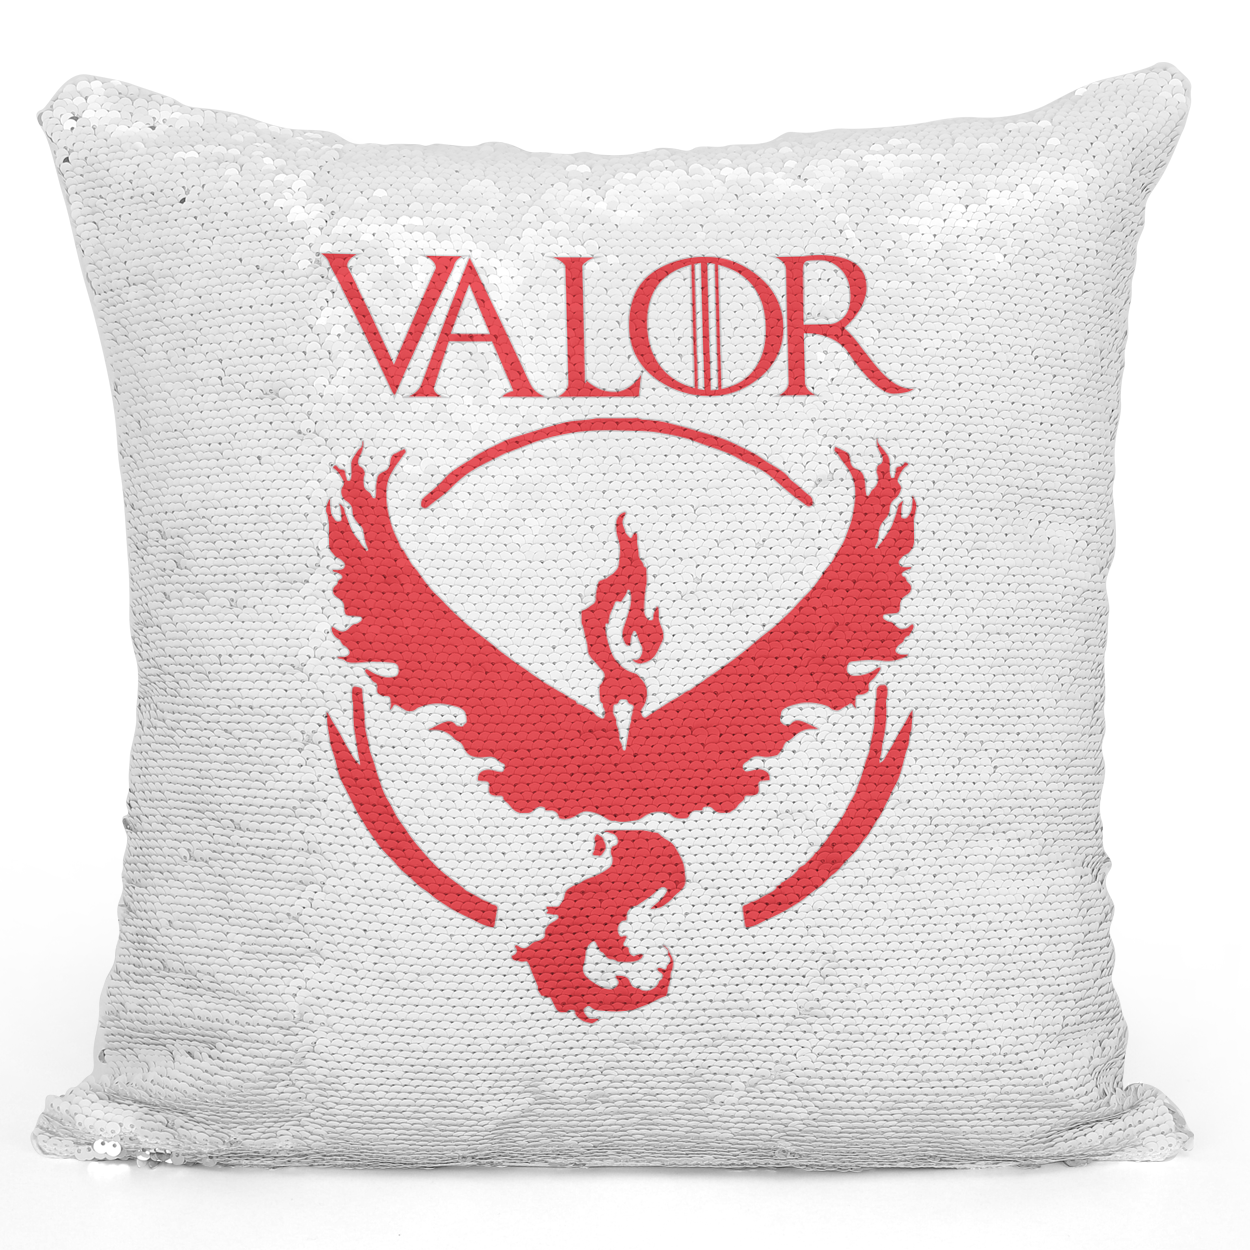 Sequin Pillow Magic Mermaid Throw Pillow Team Valor Logo Pillow - Premium 100% Polyester 16 x 16 inch Square Modern Livingroom Decorative Pillow Loud Universe